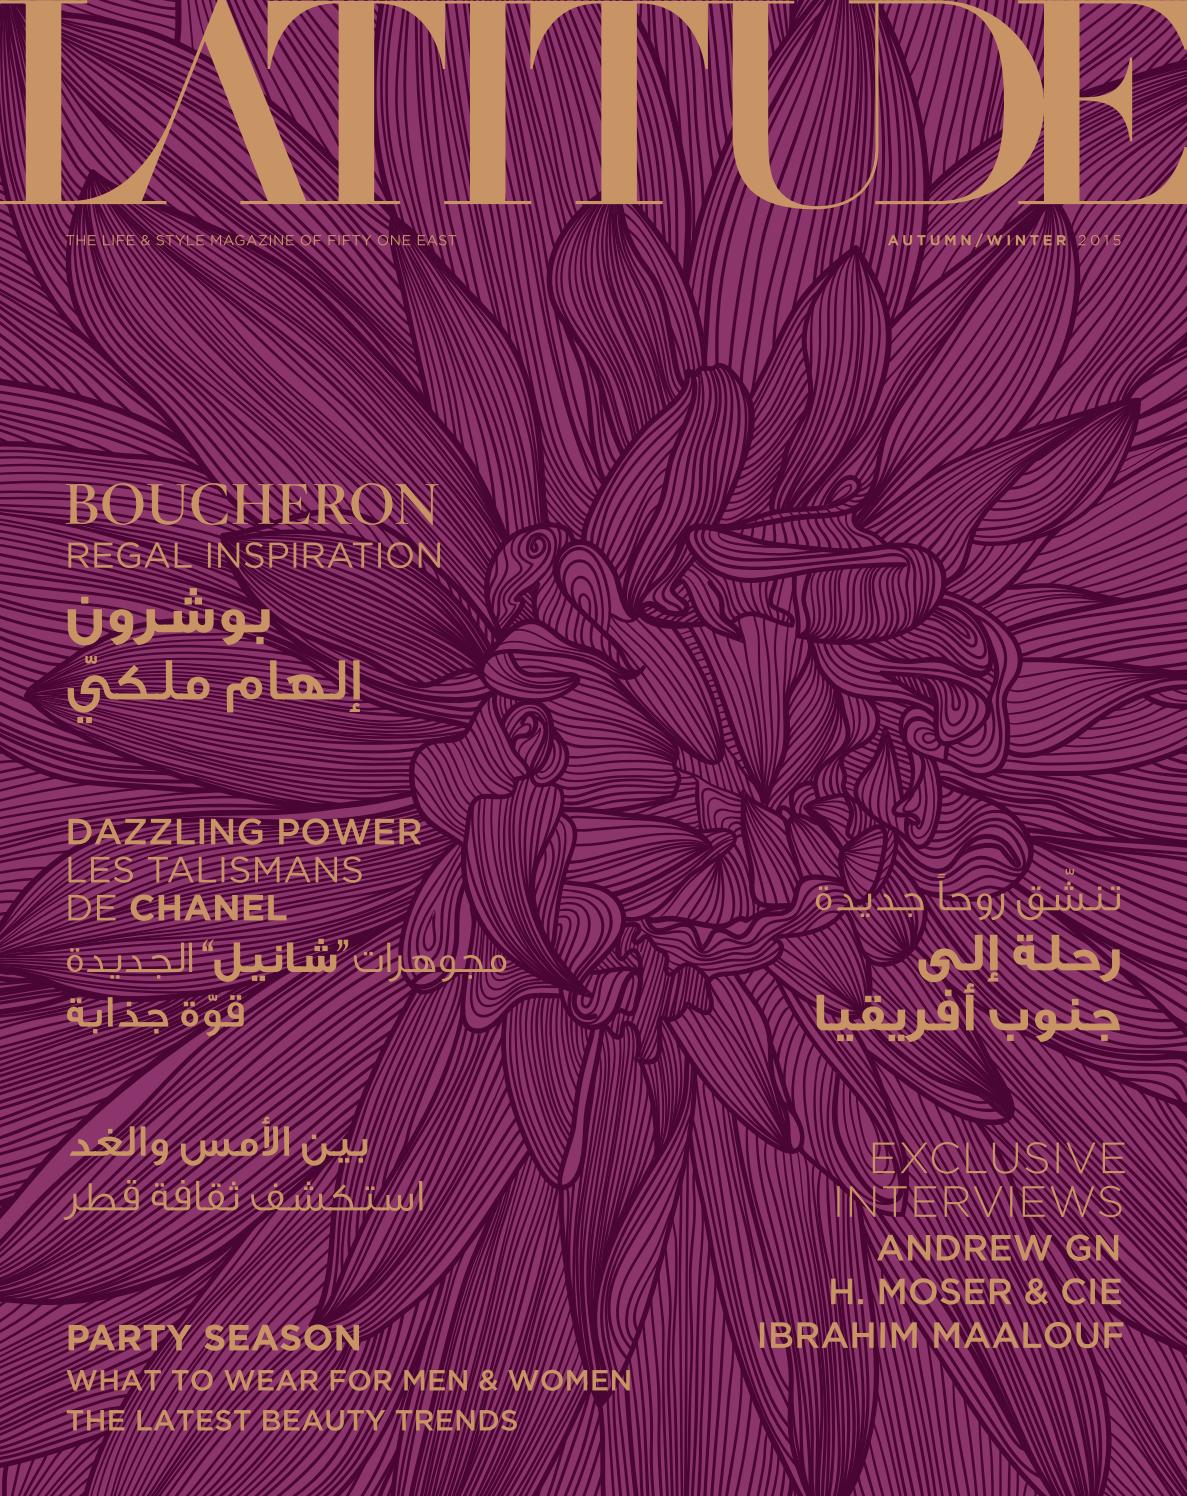 6218a9eaa Latitude Magazine -- Issue 10 by Latitude - issuu